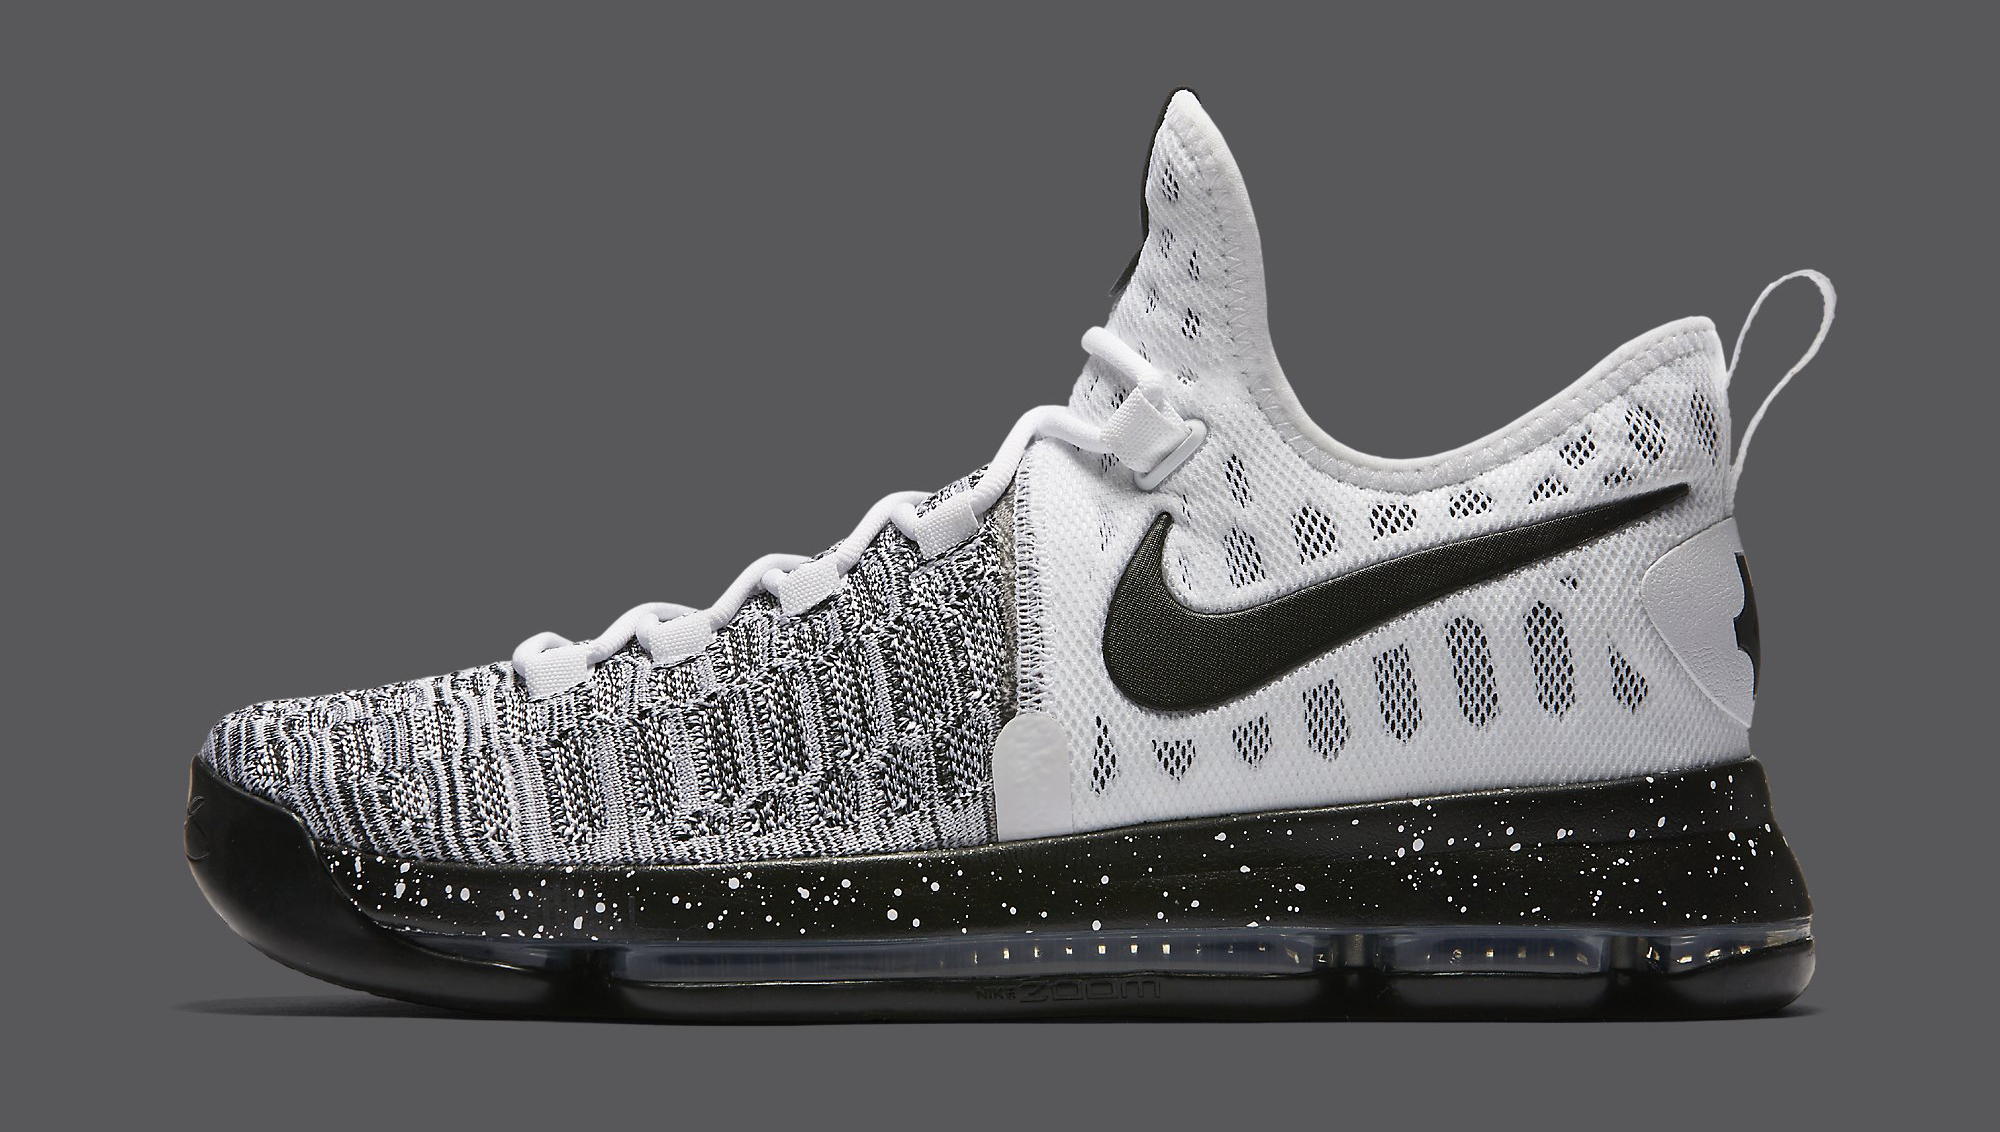 870b28db4305 Nike KD 9 White Black Oreo 843392-100 Profile